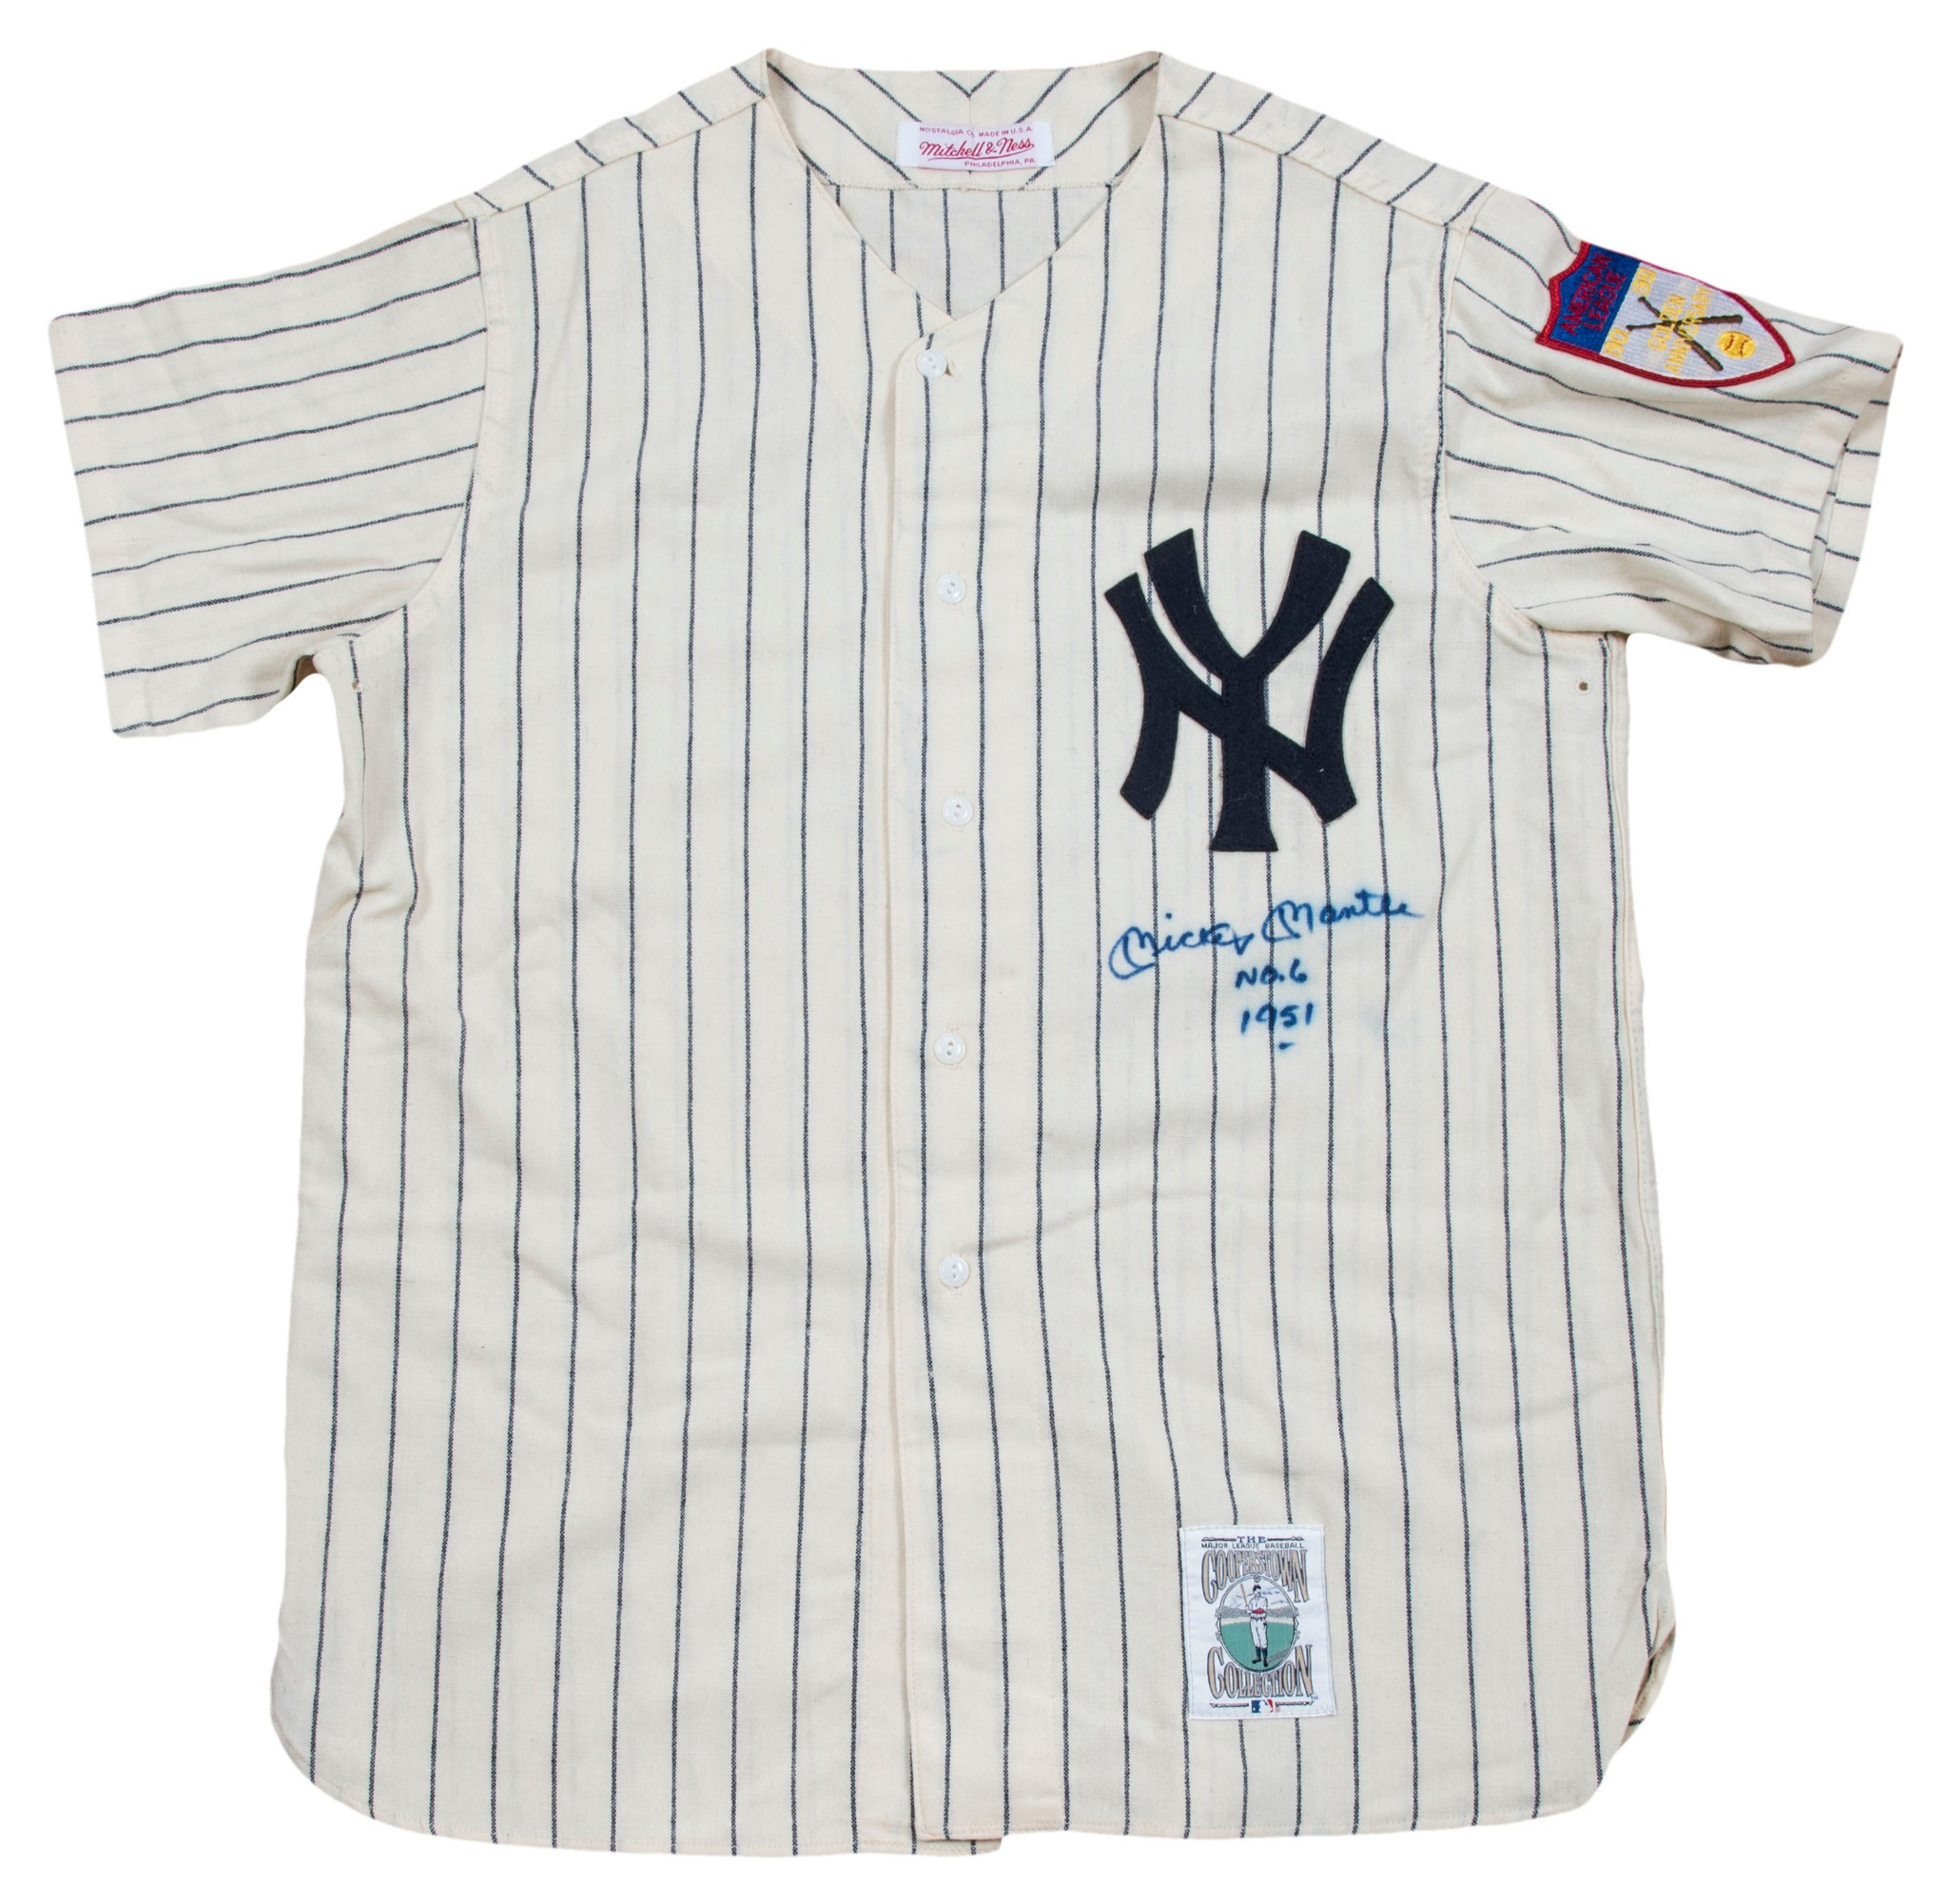 cheaper b5383 8d632 Details about Incredible Mickey Mantle No. 6 Signed Inscribed NY Yankees  Rookie Jersey PSA DNA